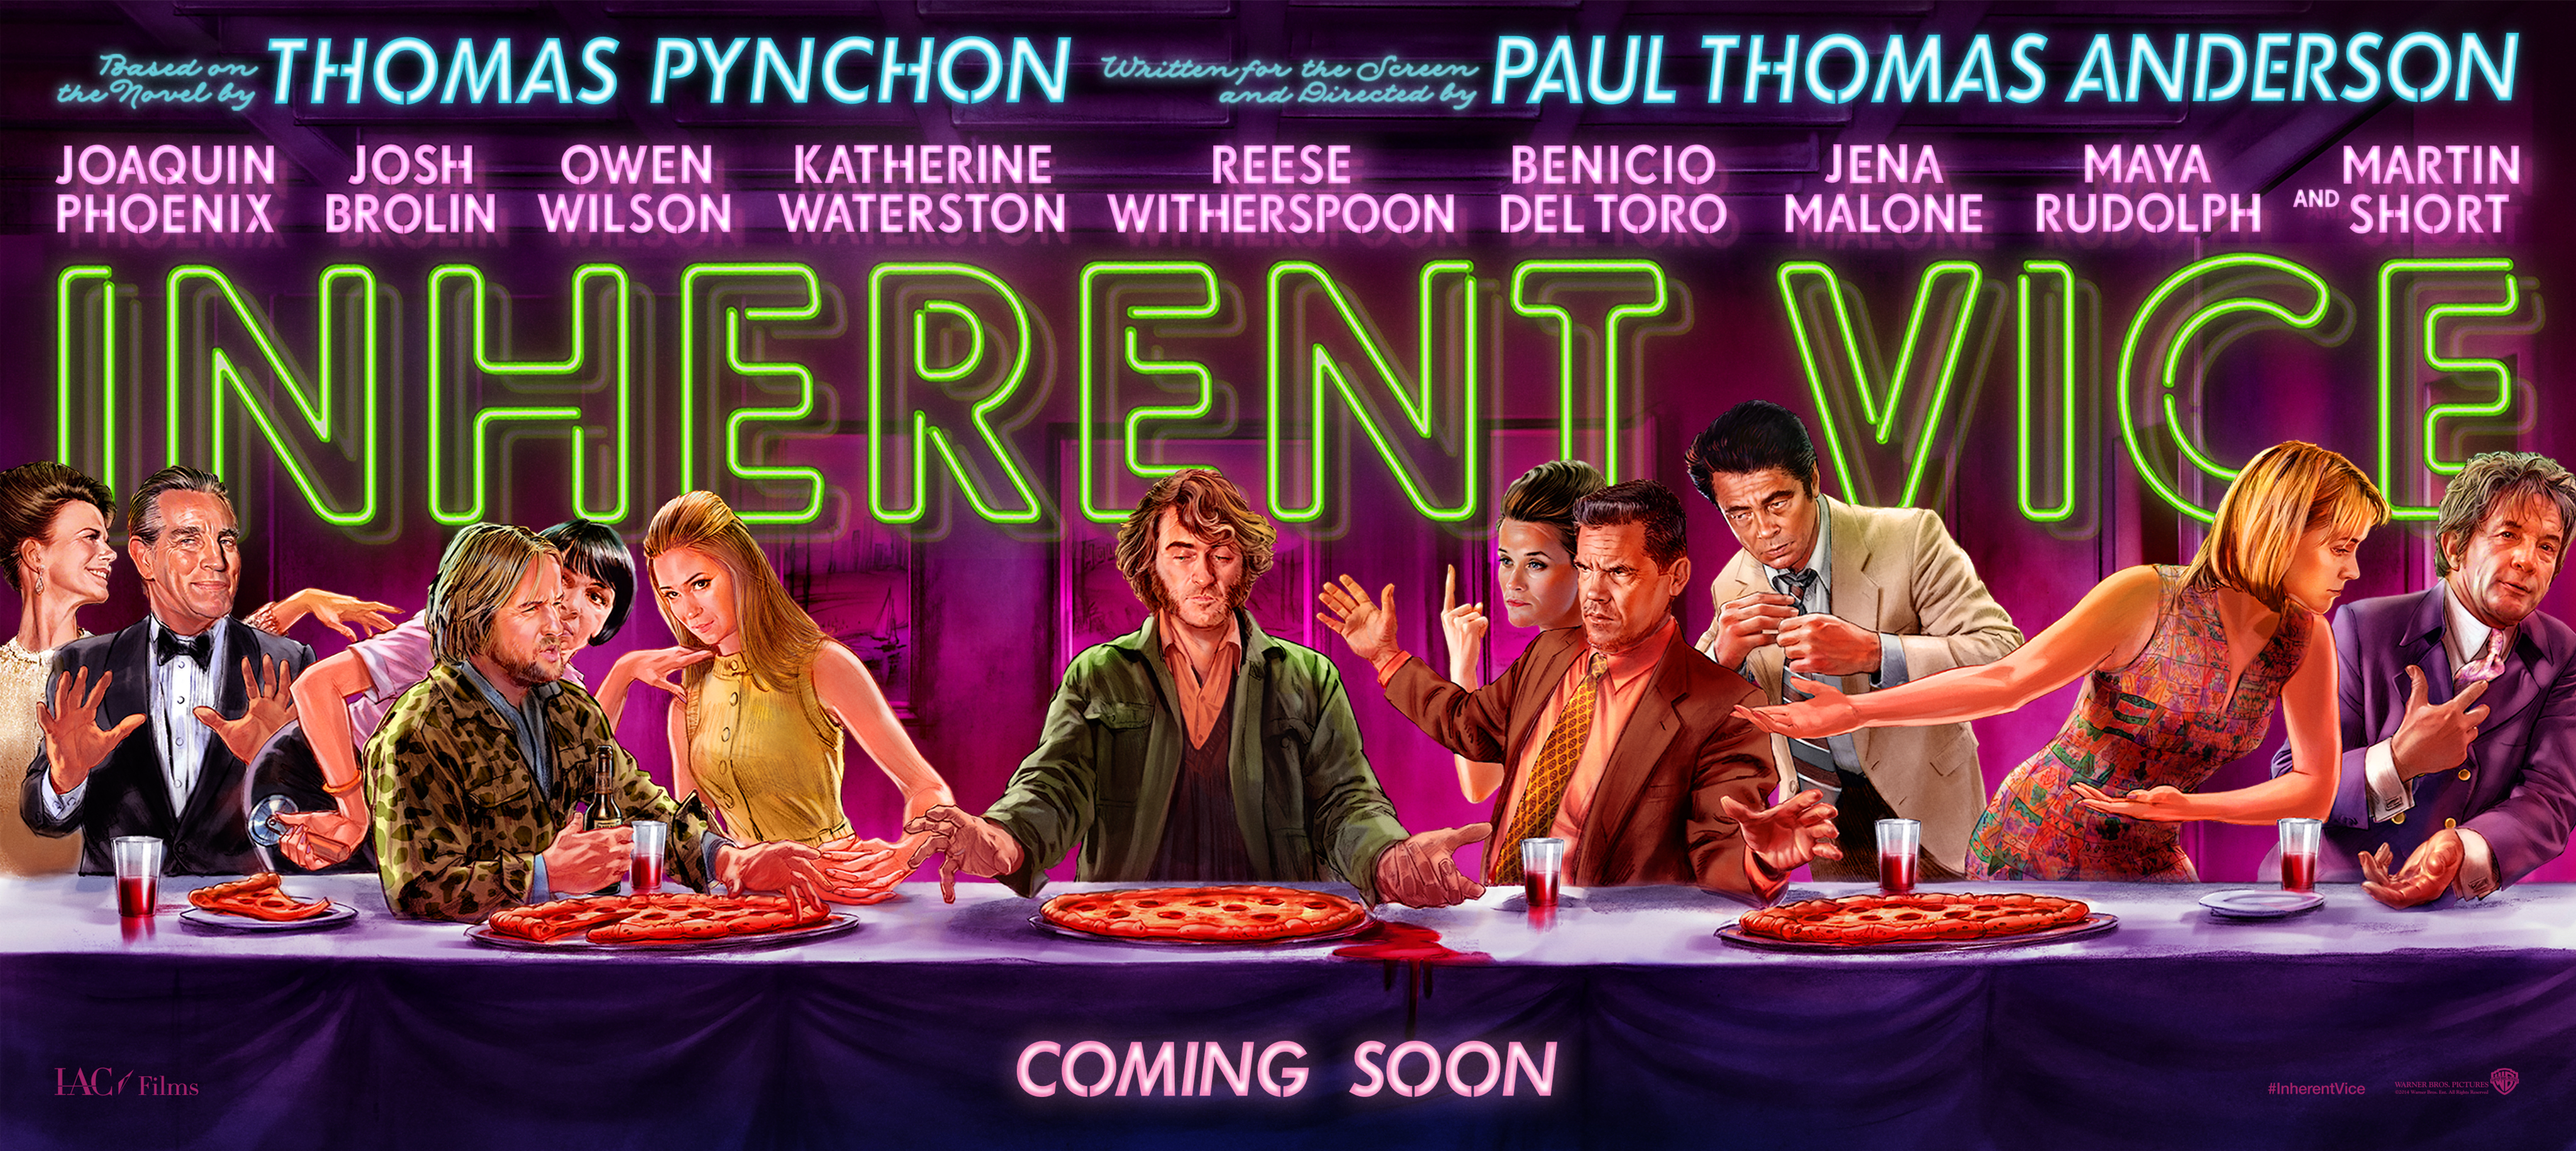 Inherent Vice Movie Poster (2014) .  Image courtesy of http://imgs.littlewhitelies.co.uk/